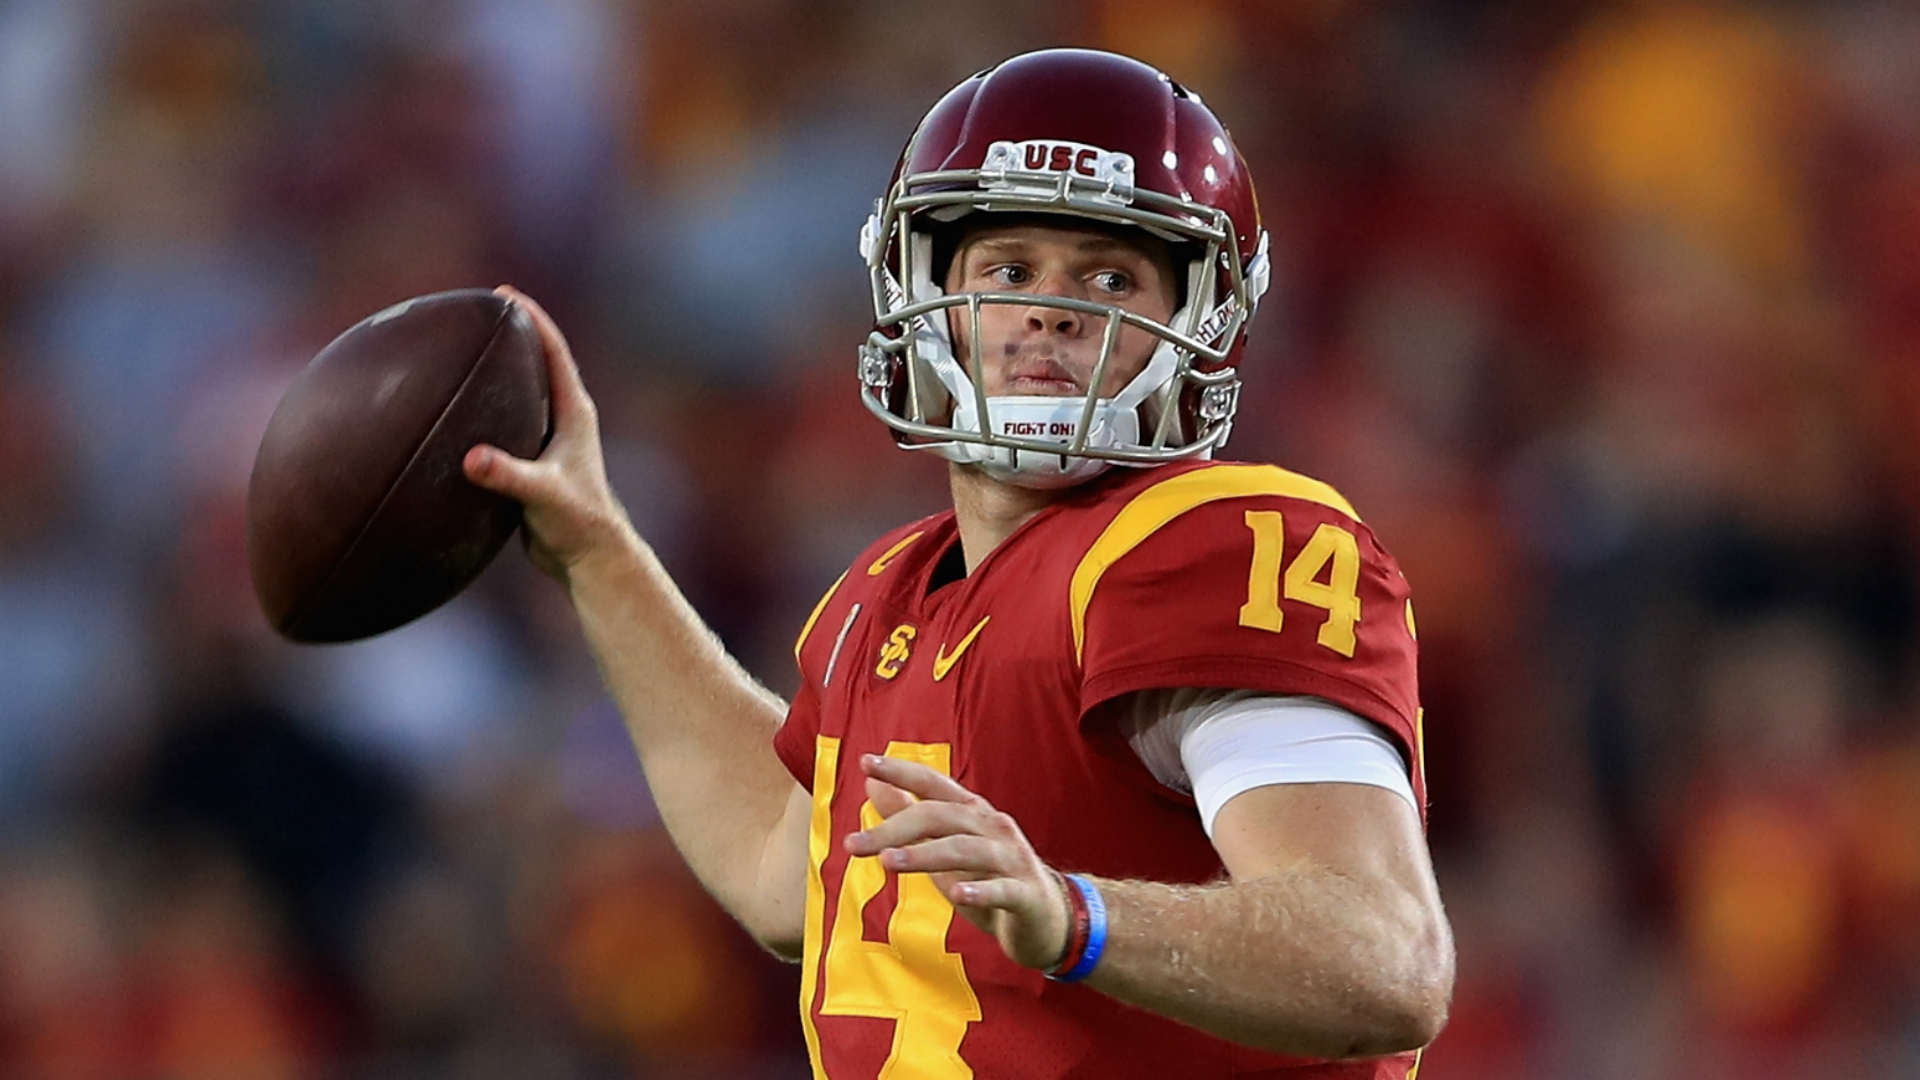 USC's Sam Darnold unlikely to enter NFL Draft after season, report says